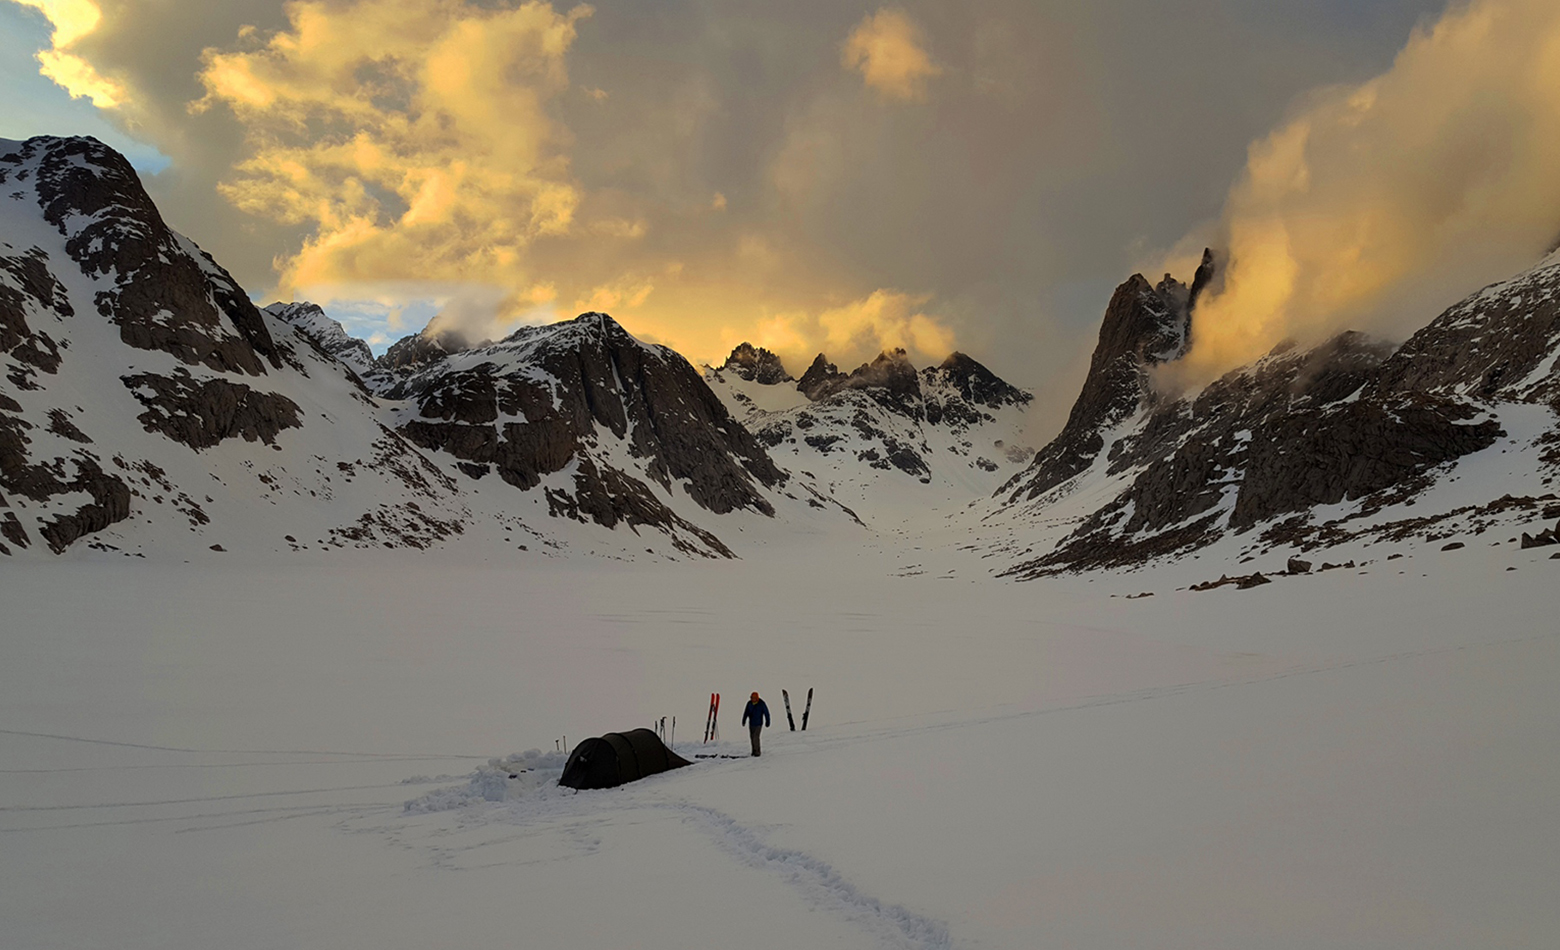 Camping and Ski Backpacking in the Wind River Range, Wyoming.